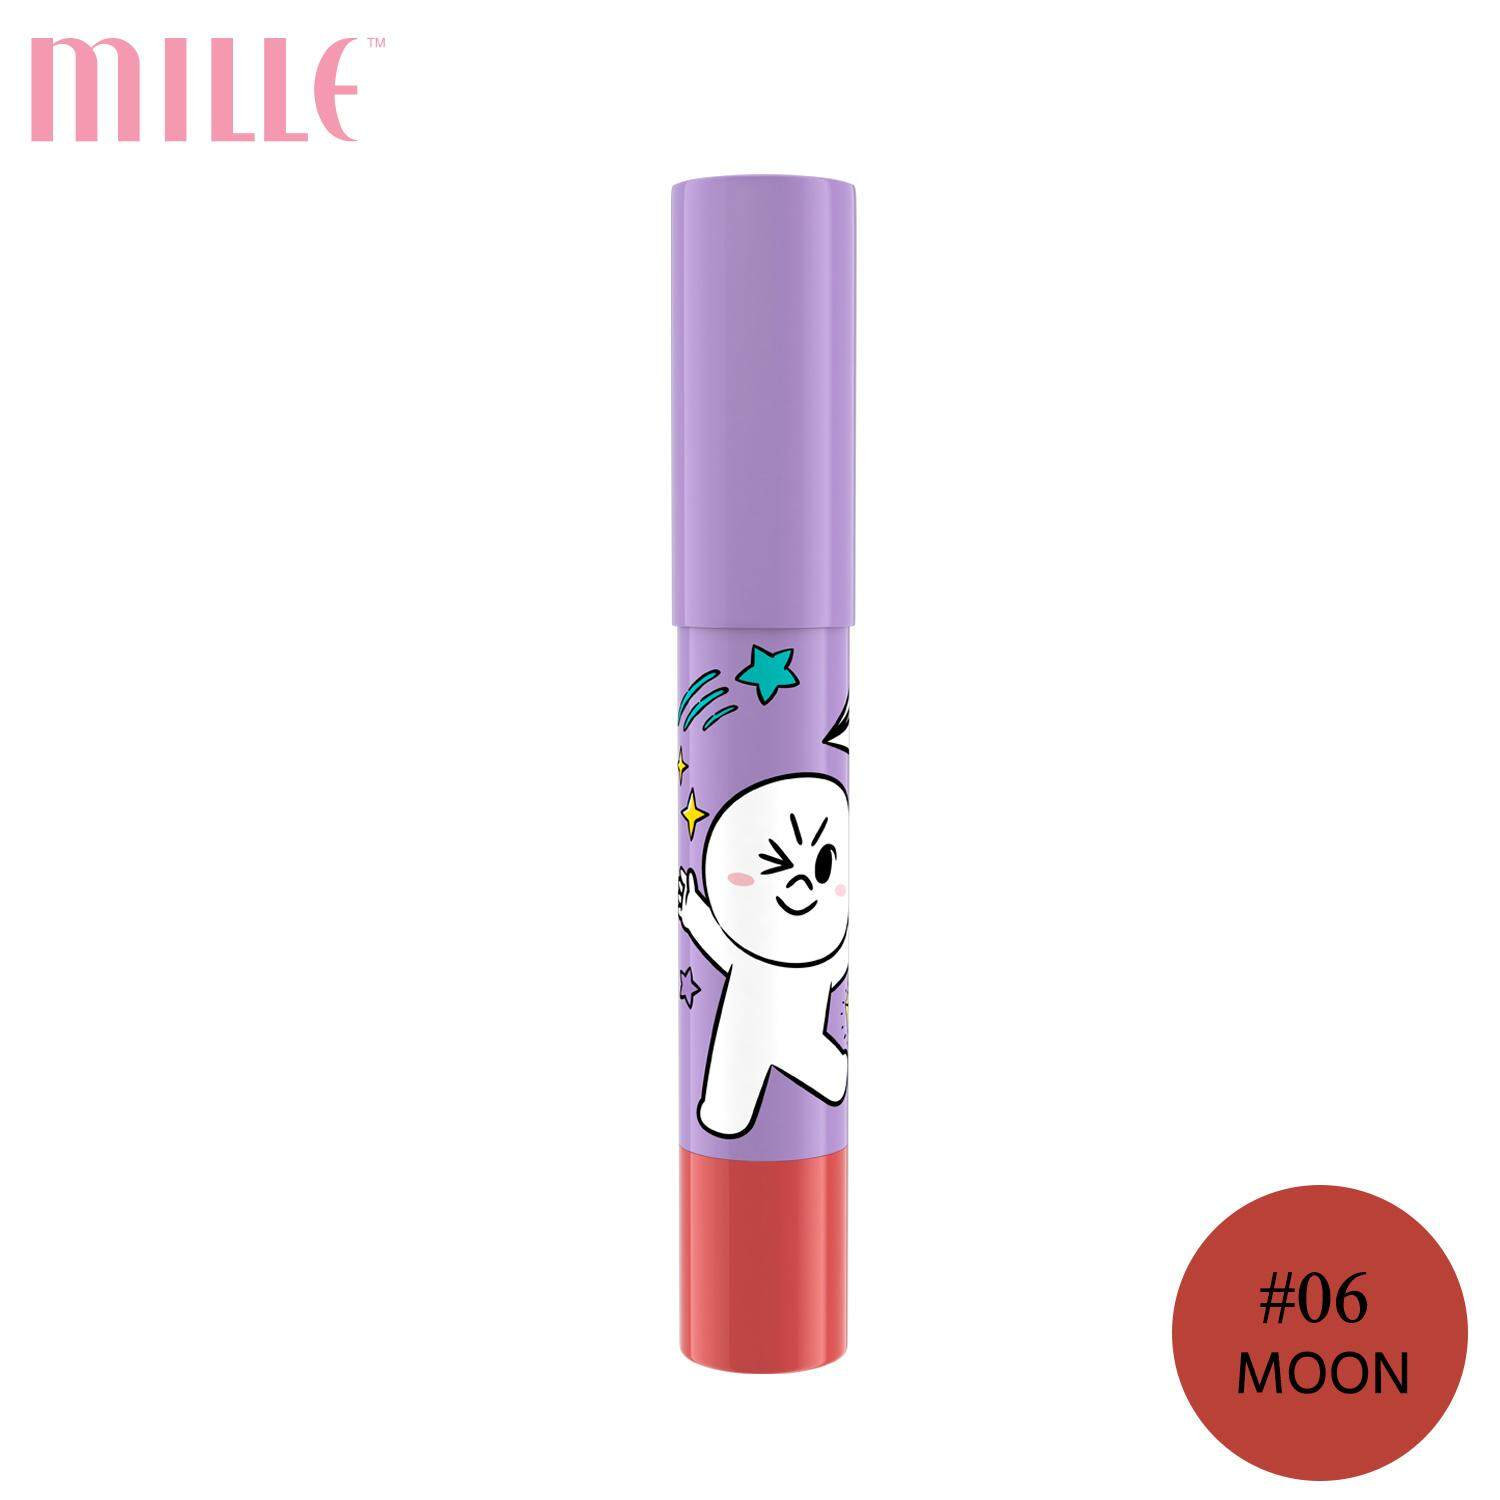 Mille ลิปเครยอน Line Friends l Mille Iconic Crayon Lip Color 2.5g.